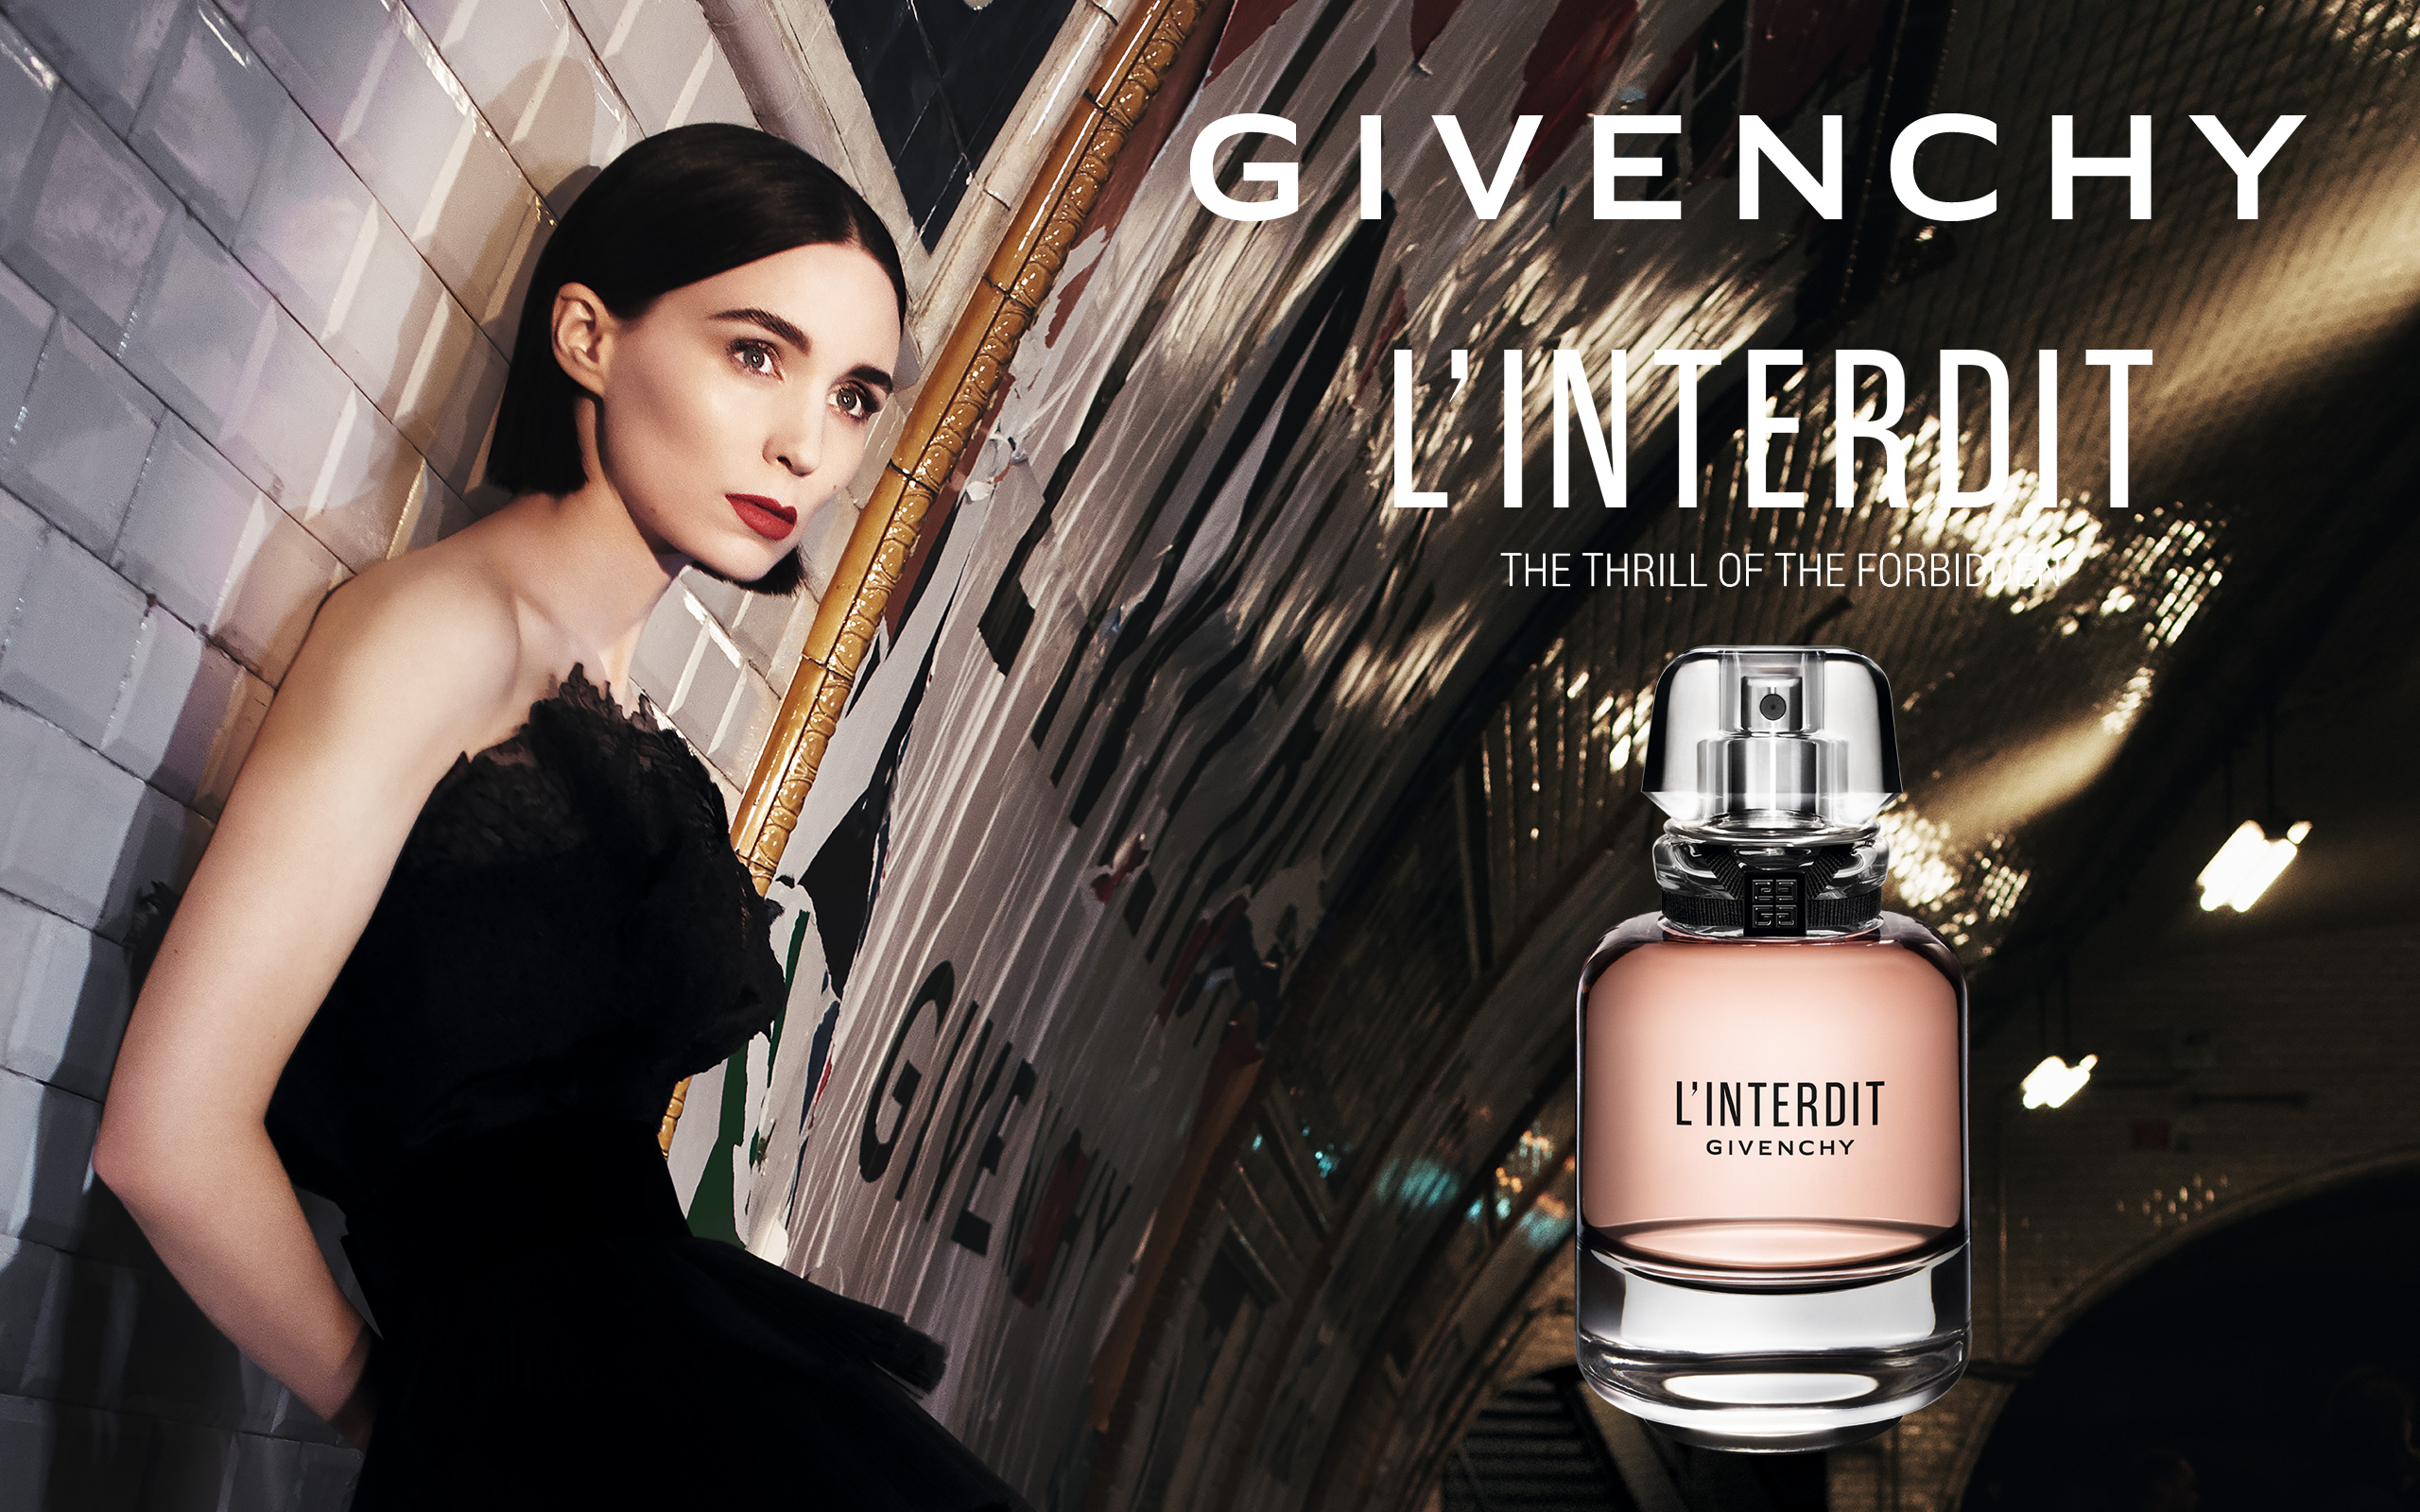 Parfums Givenchy Launched Re-edition Fragrance: L'INTERDIT